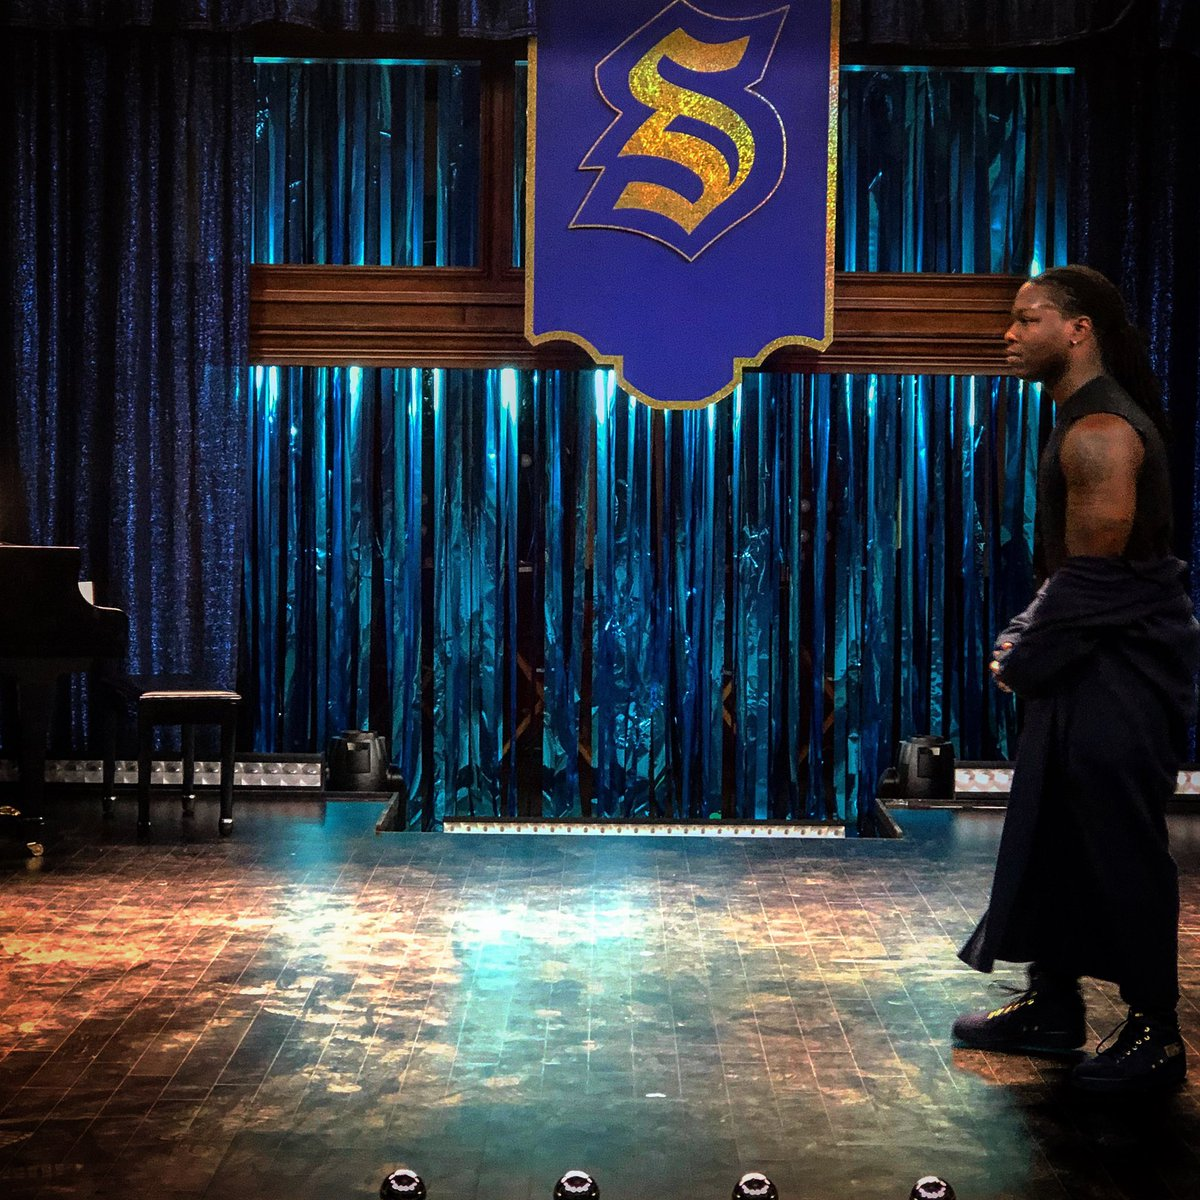 Good morning, #legacies fans. In just 3 days you finally get to see our talent show episode and it is going to blow your mind.